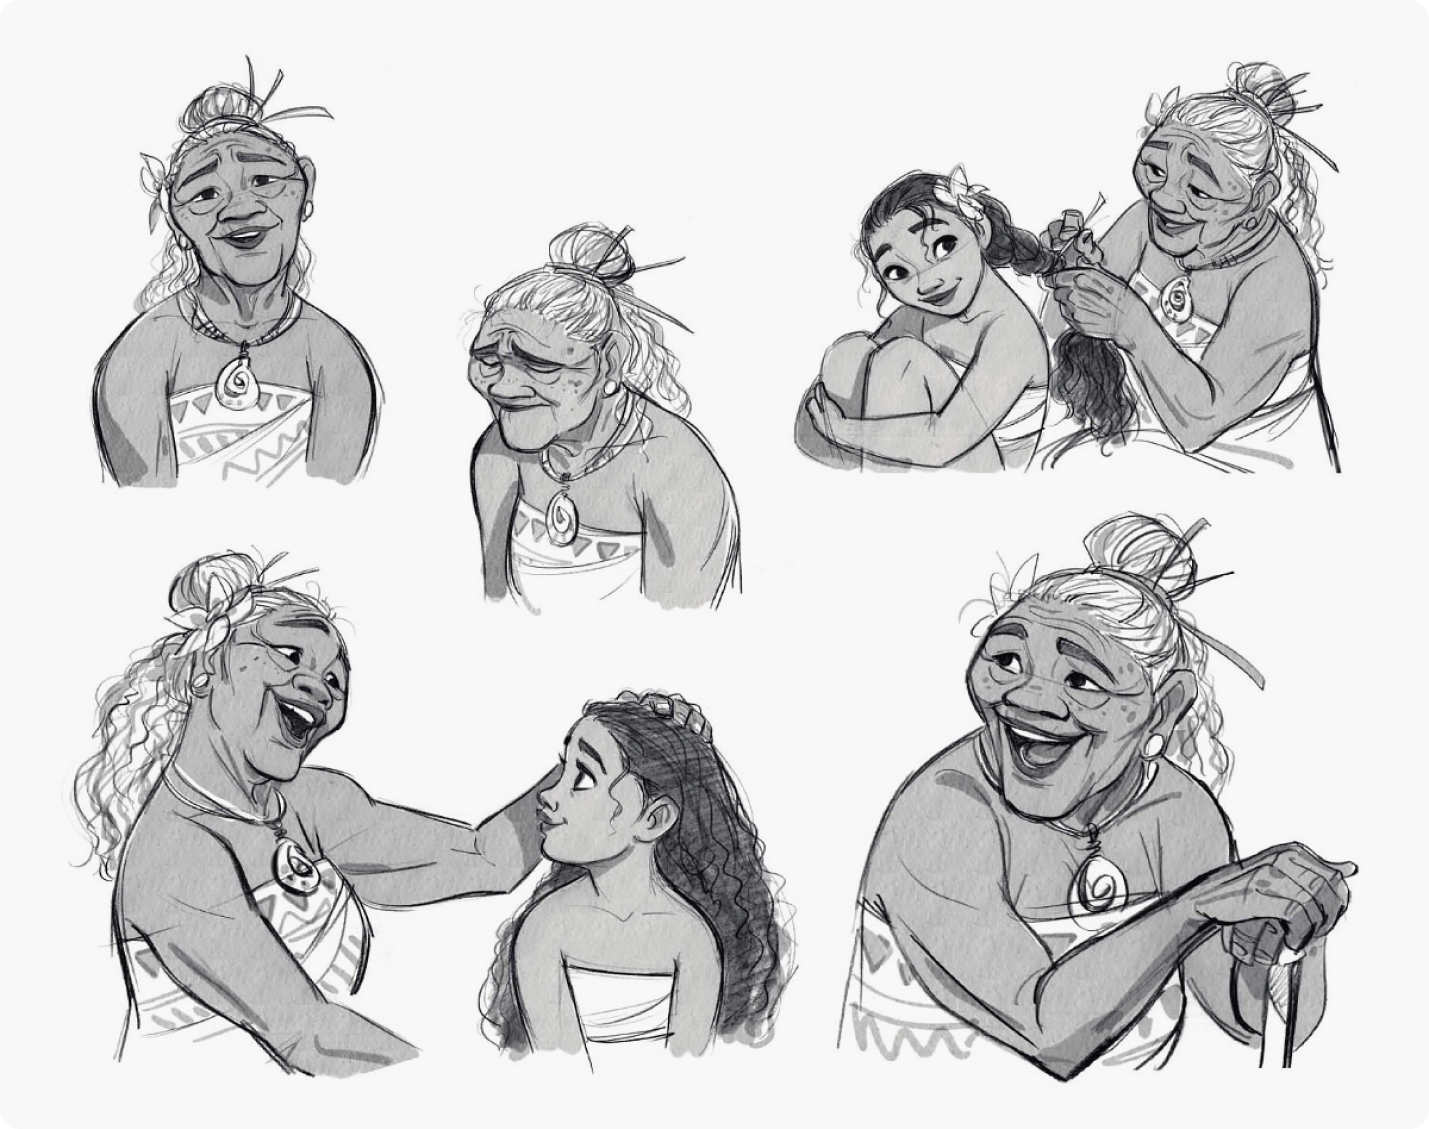 Image featuring iIllustrations from Disney characters